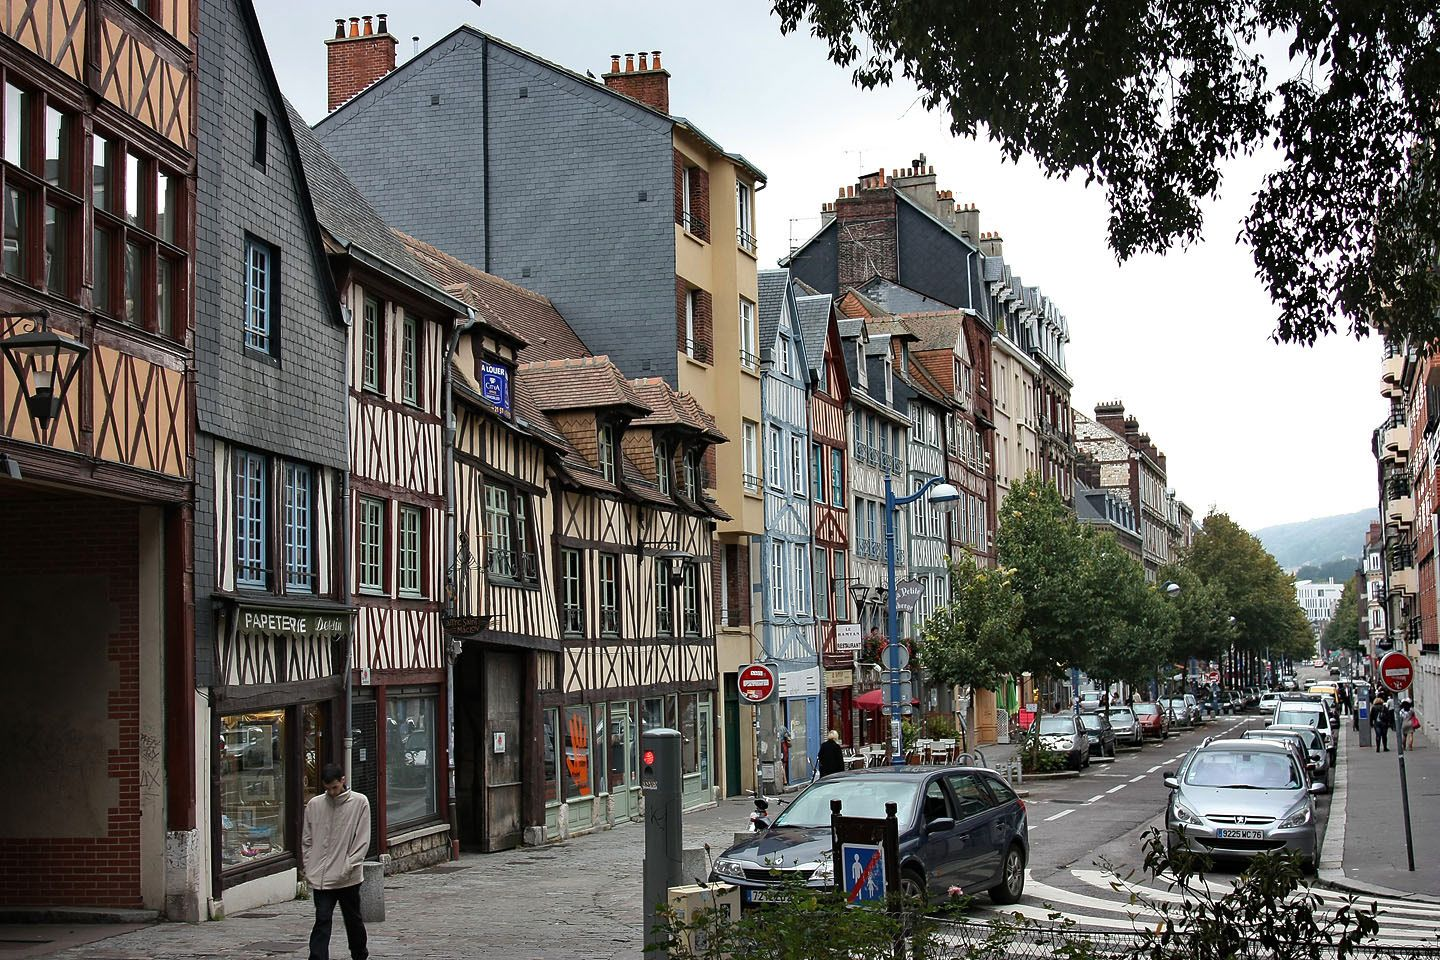 Rouen France Rouen France photos wallpapers Vacation 1440x960